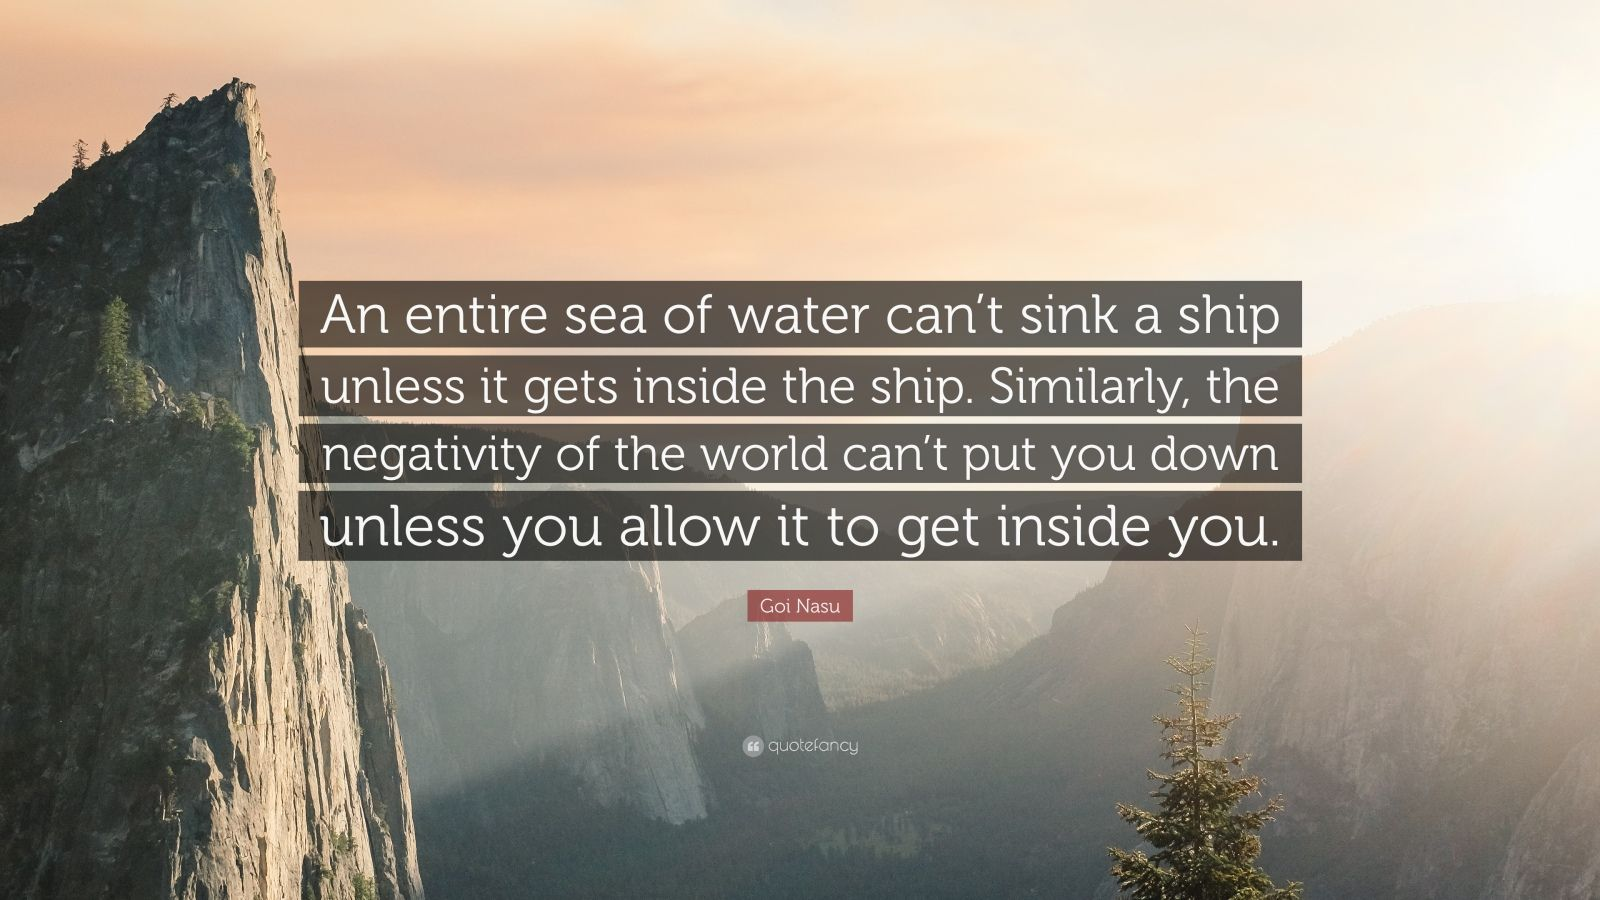 """Goi Nasu Quote: """"An entire sea of water can't sink a ship unless it gets inside the ship. Similarly, the negativity of the world can't put you down unless you allow it to get inside you."""""""